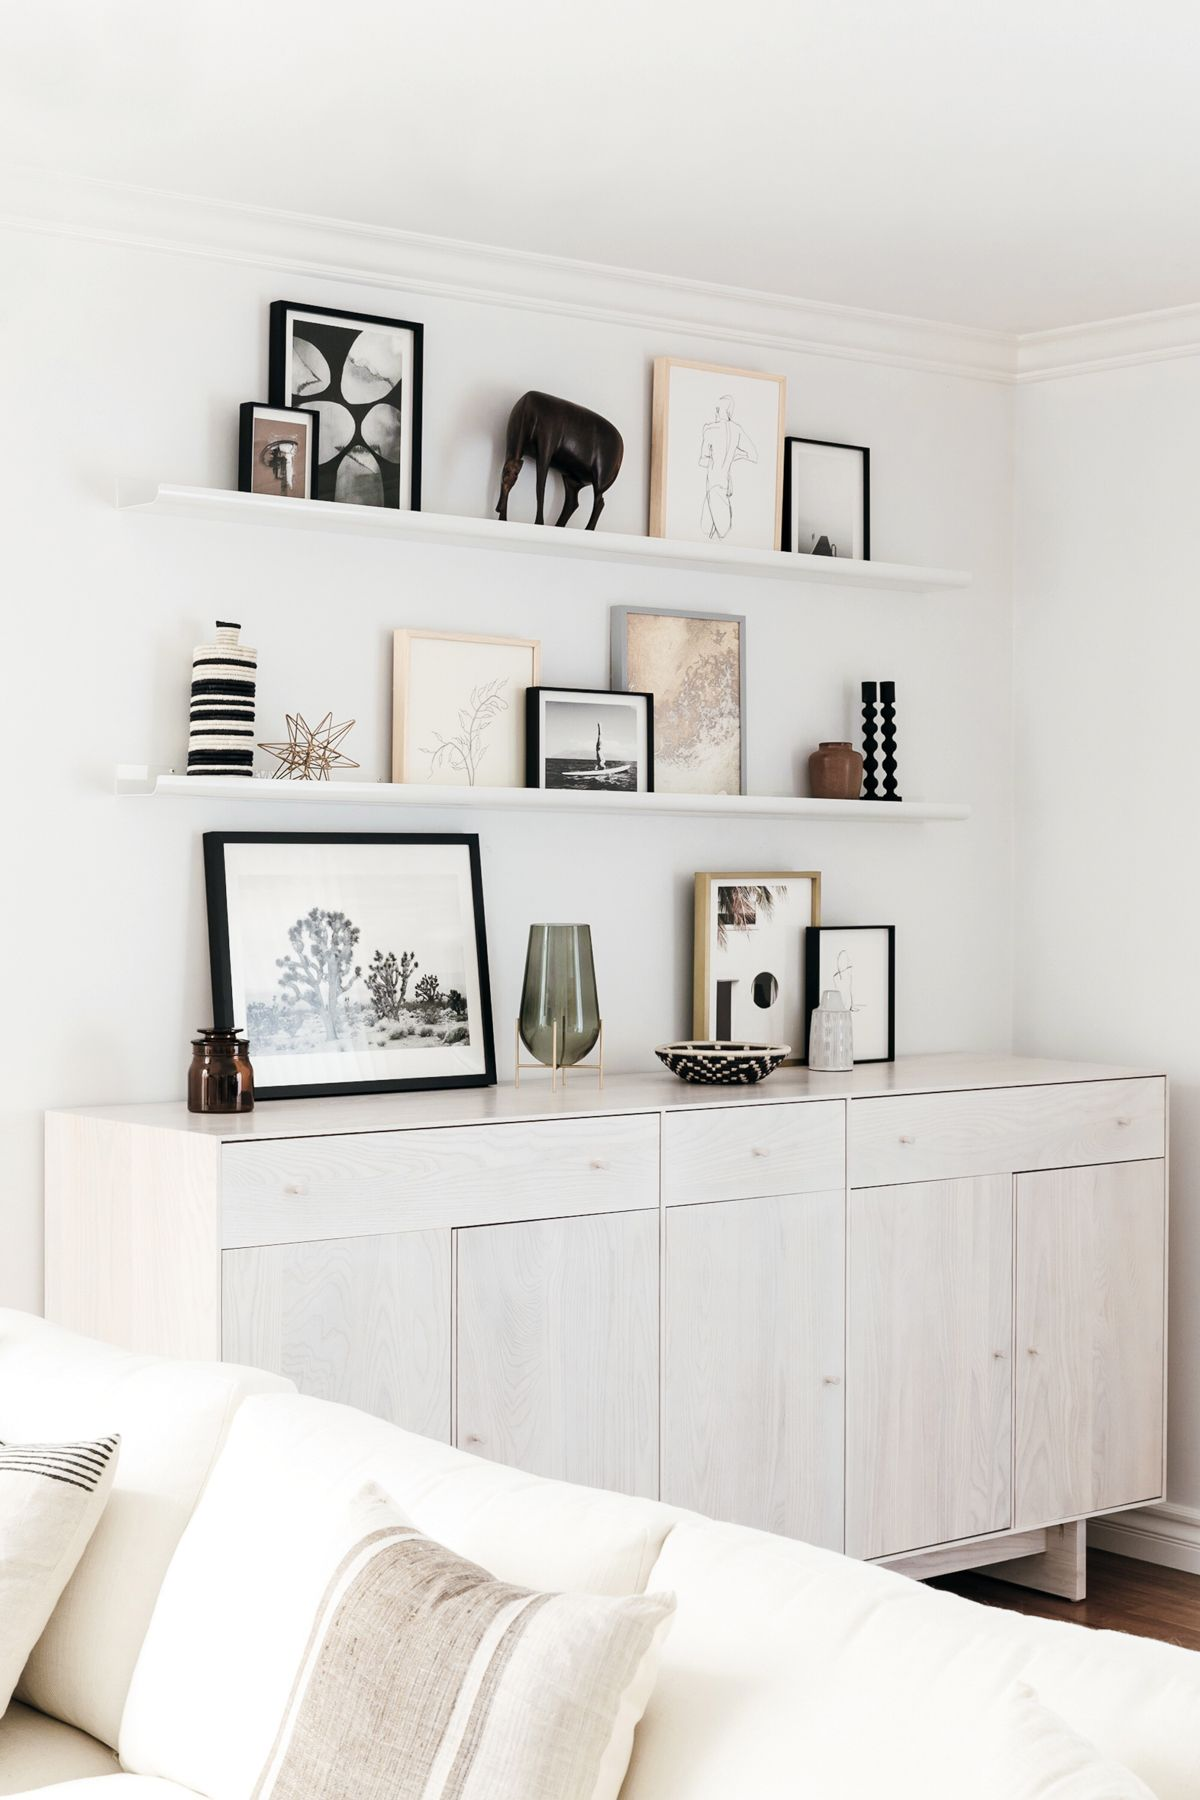 Dining Room Shelving With Framed Art Gallery Wall On Ledge Shelves Grey Washed Wood Custom Cabinet Neutral Decor Black And White Eatsleepwear